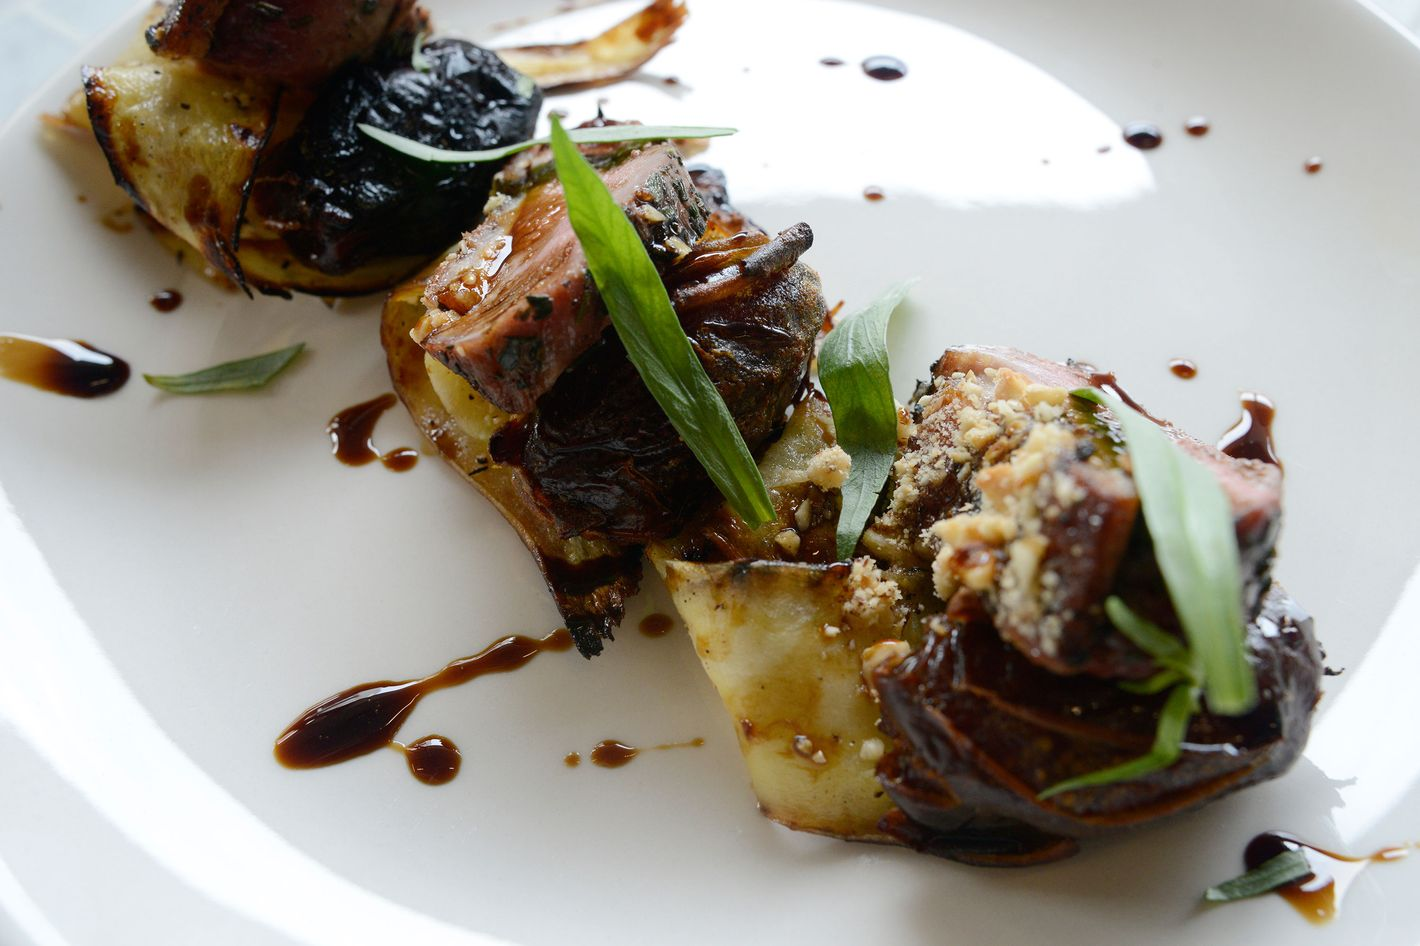 Duck with 'nduja-stuffed dates, parsnips, hazelnuts, and pekmez (Turkish fruit-must syrup).